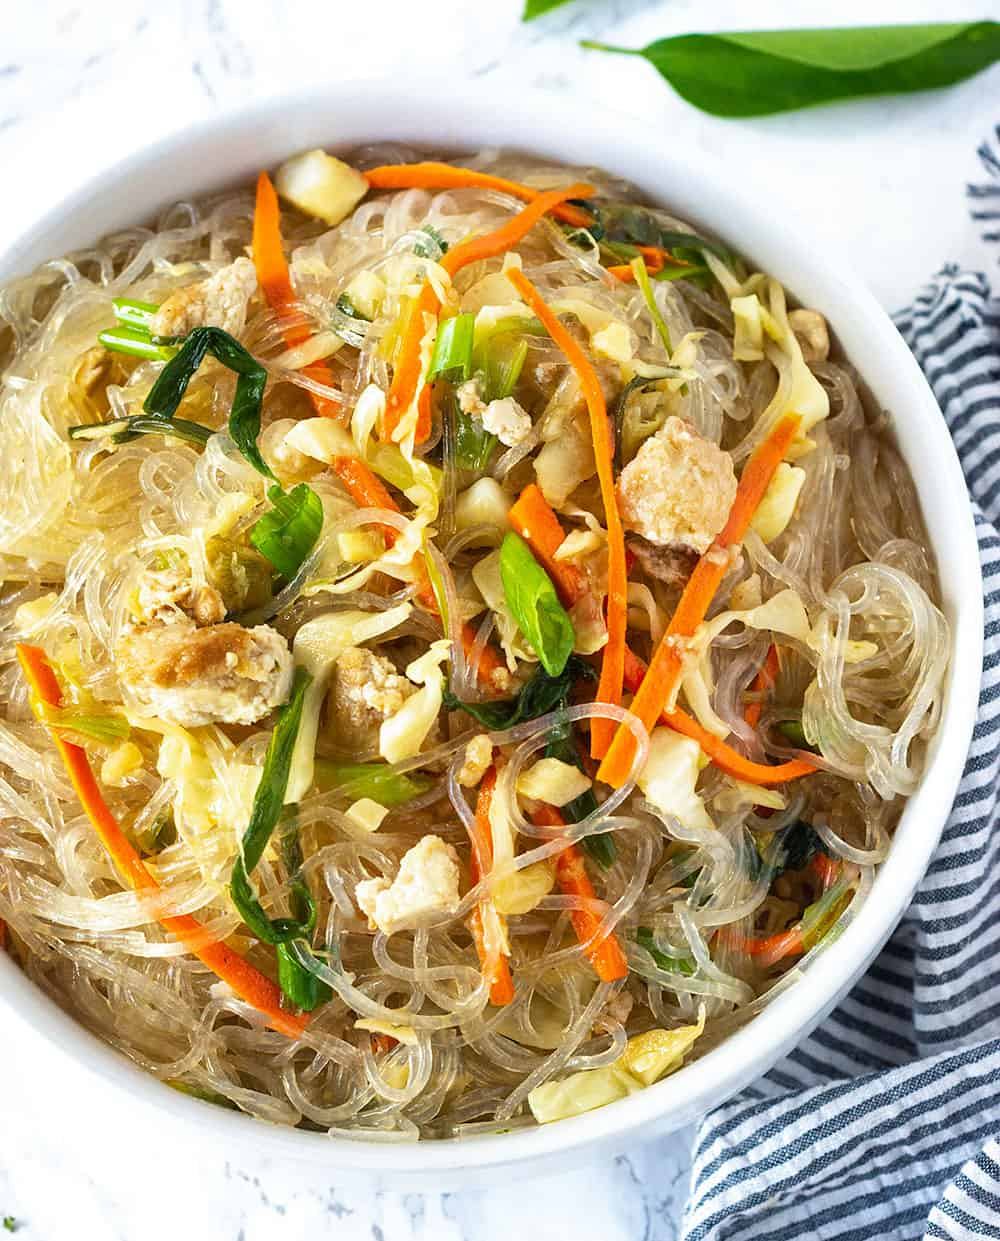 Pancit Bihon (Filipino Stir Fried Noodles)